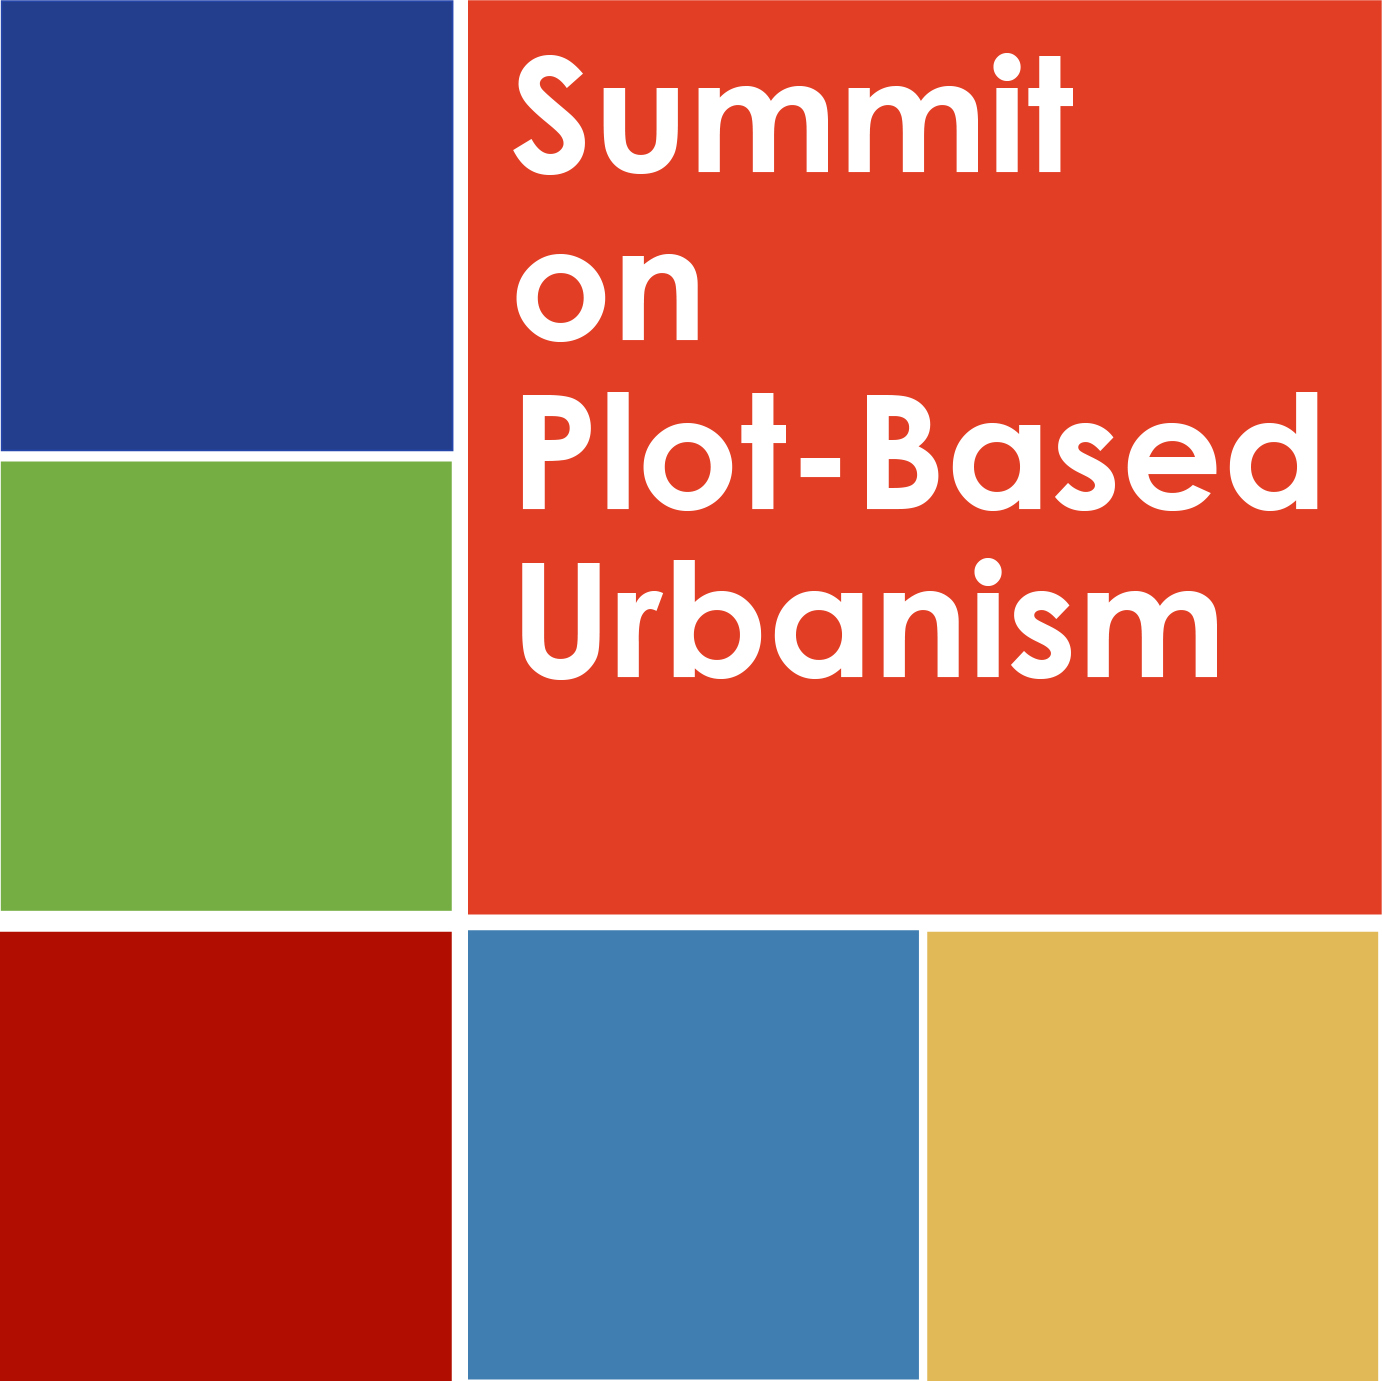 More from the Summit on Plot-Based Urbanism